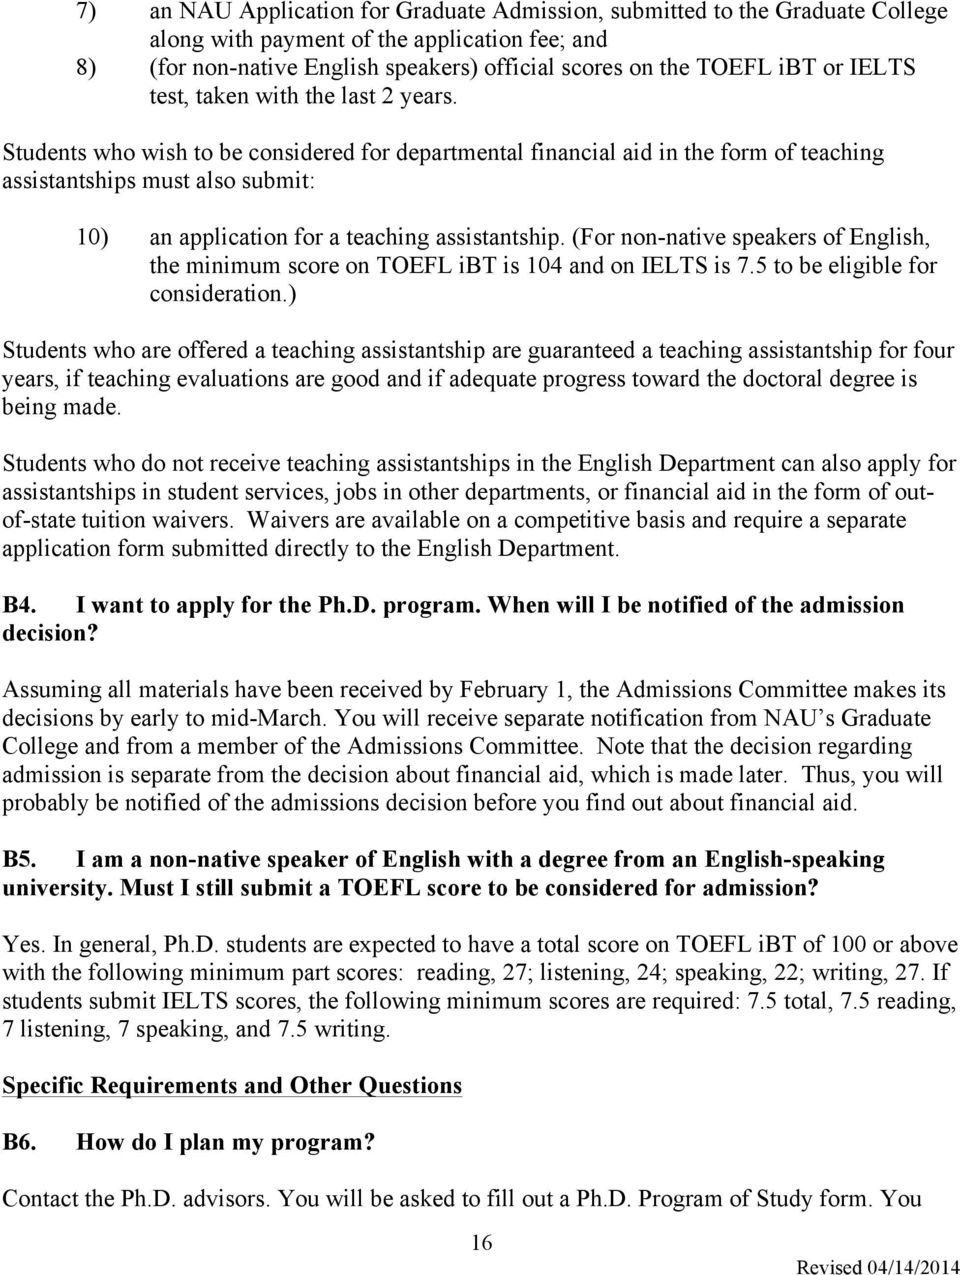 Students who wish to be considered for departmental financial aid in the form of teaching assistantships must also submit: 10) an application for a teaching assistantship.